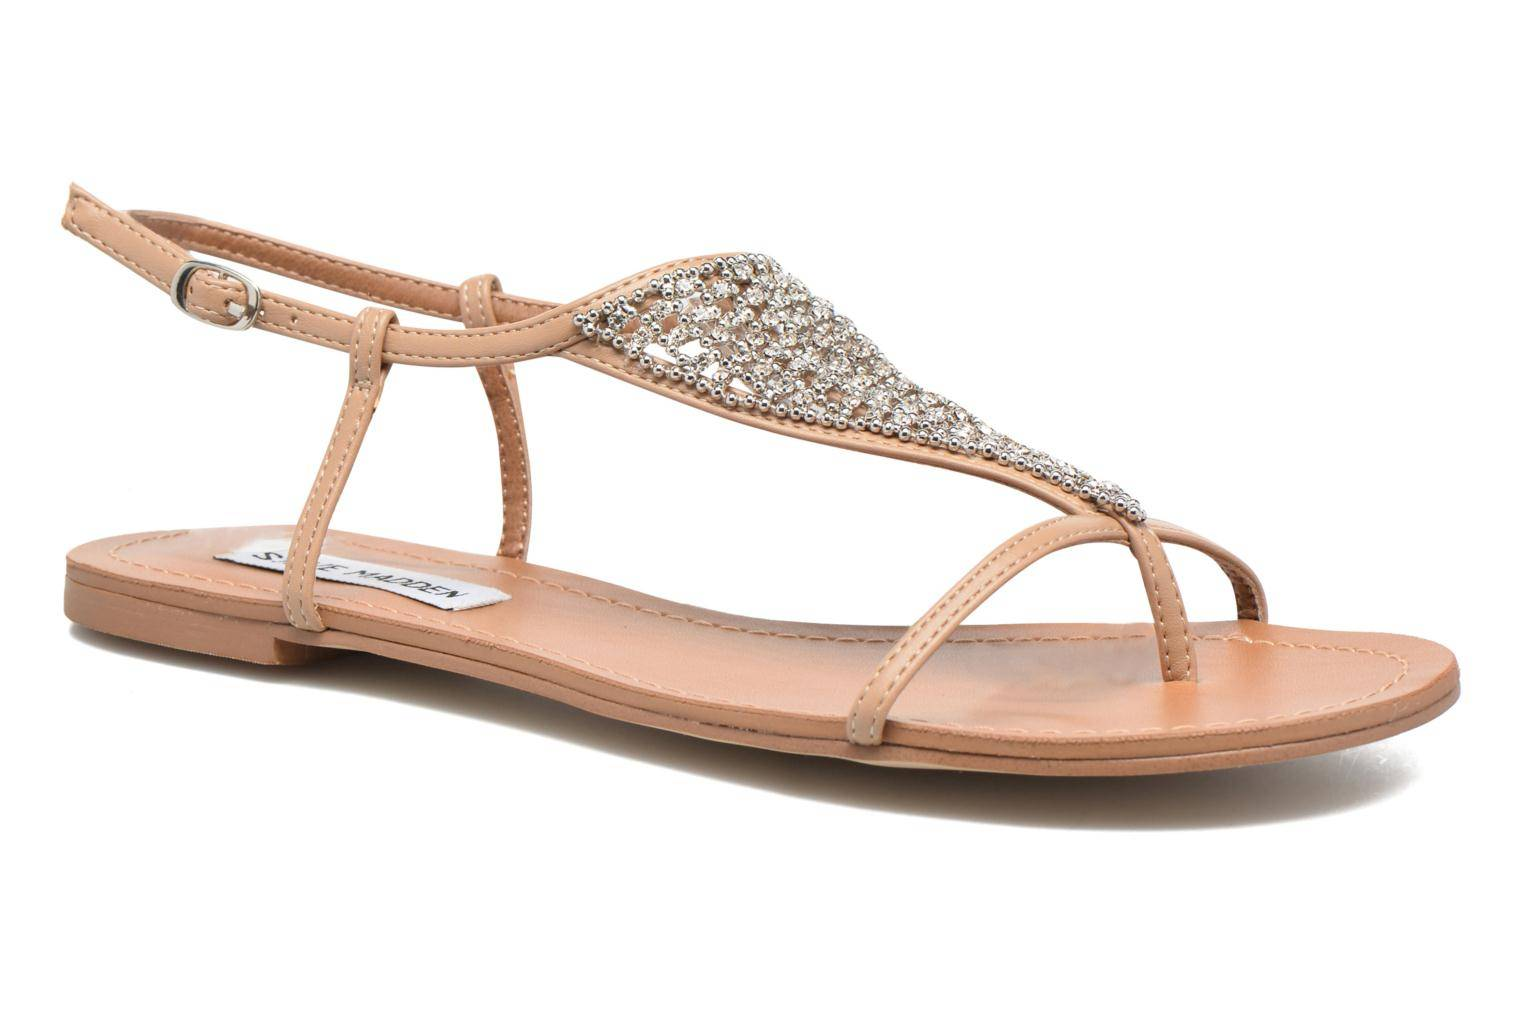 Steve Madden - Chasity Sandal by  - Sandaalit Naisille  / Ruskea